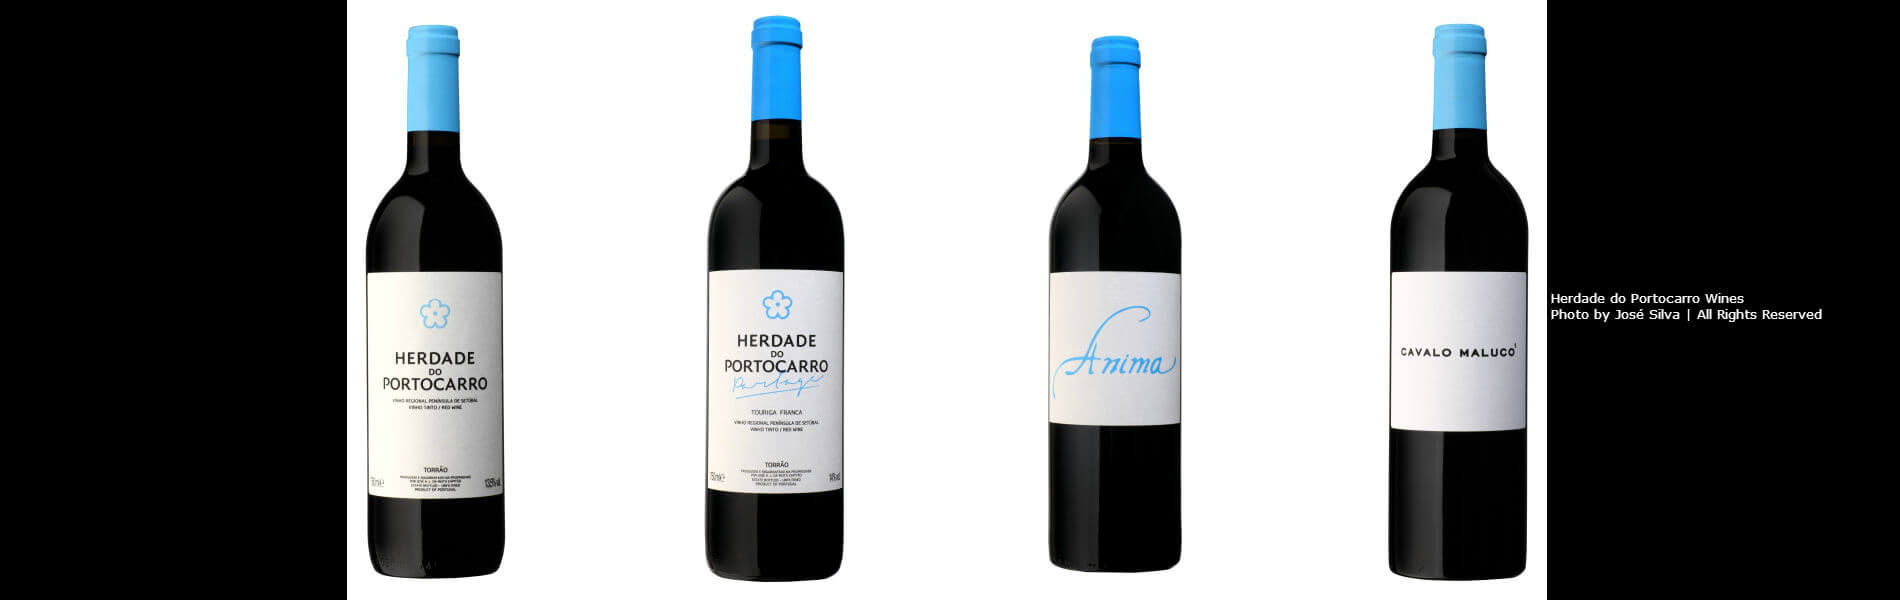 Blend-All-About-Wine-Herdade do Portocarro-Slider